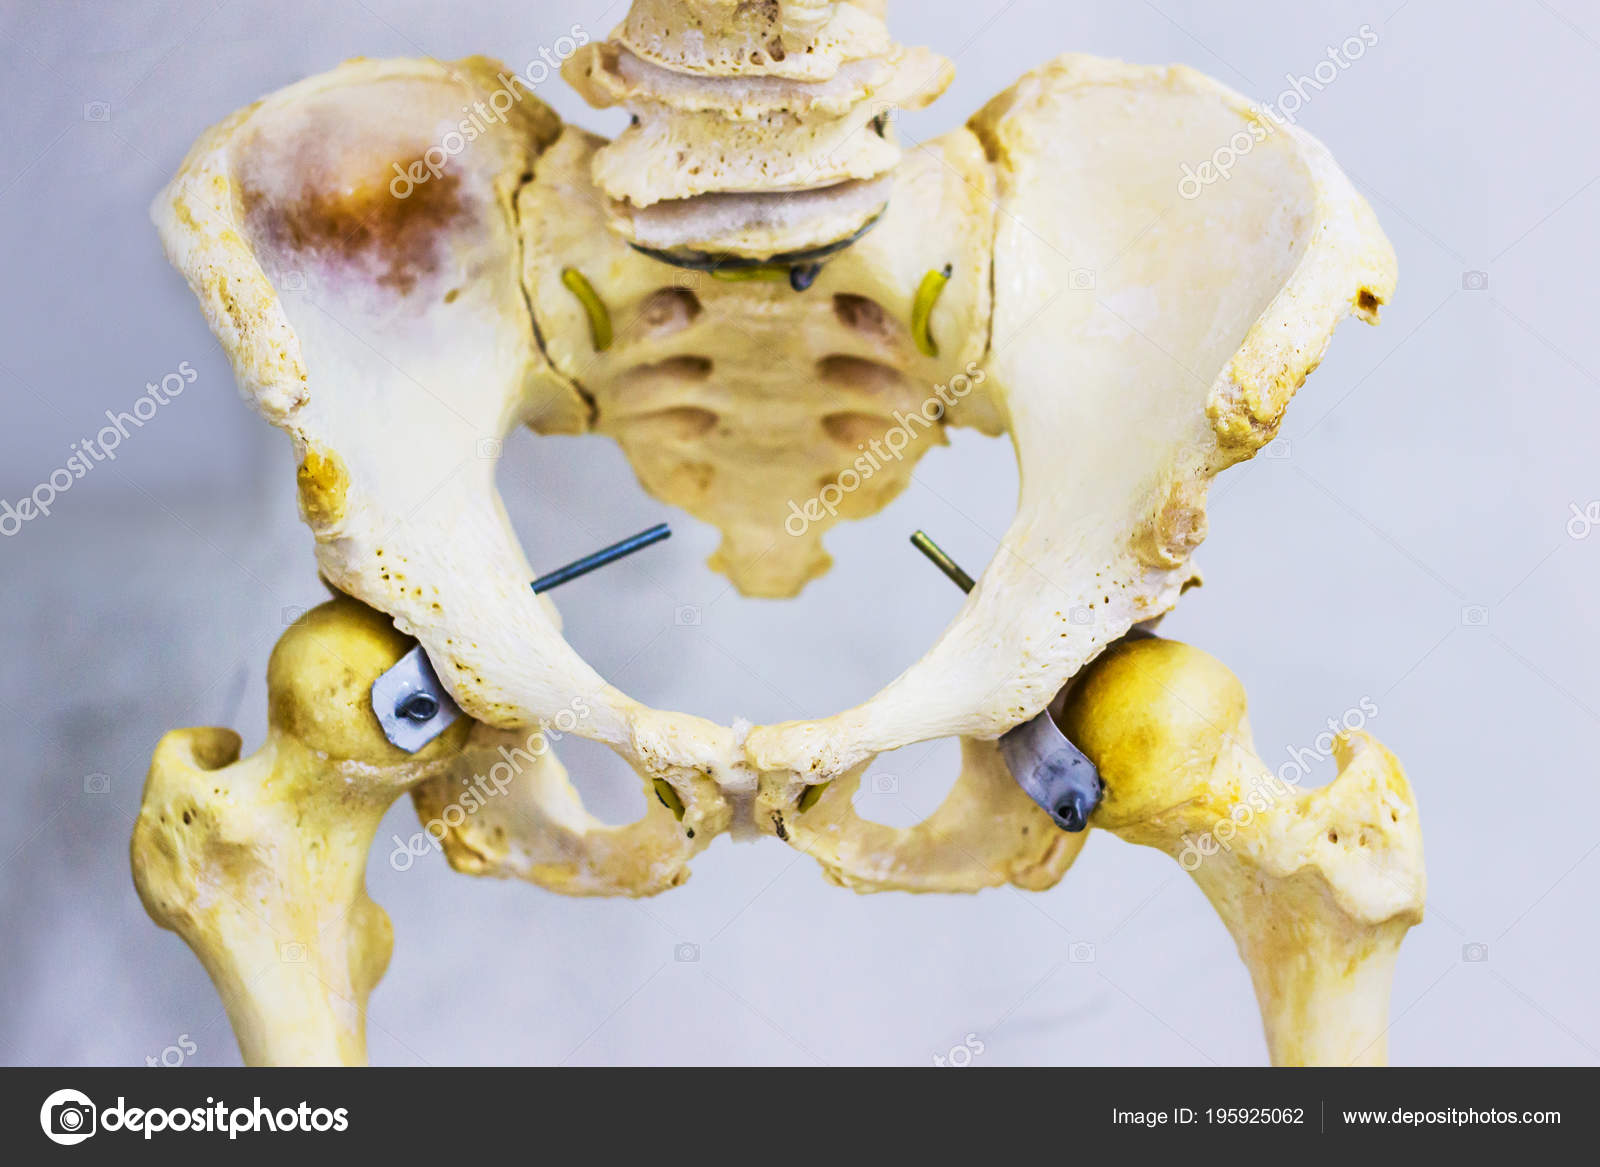 Human Skeleton Articulated Hip Joint Anatomy Showing Sacrum Hip Bone ...